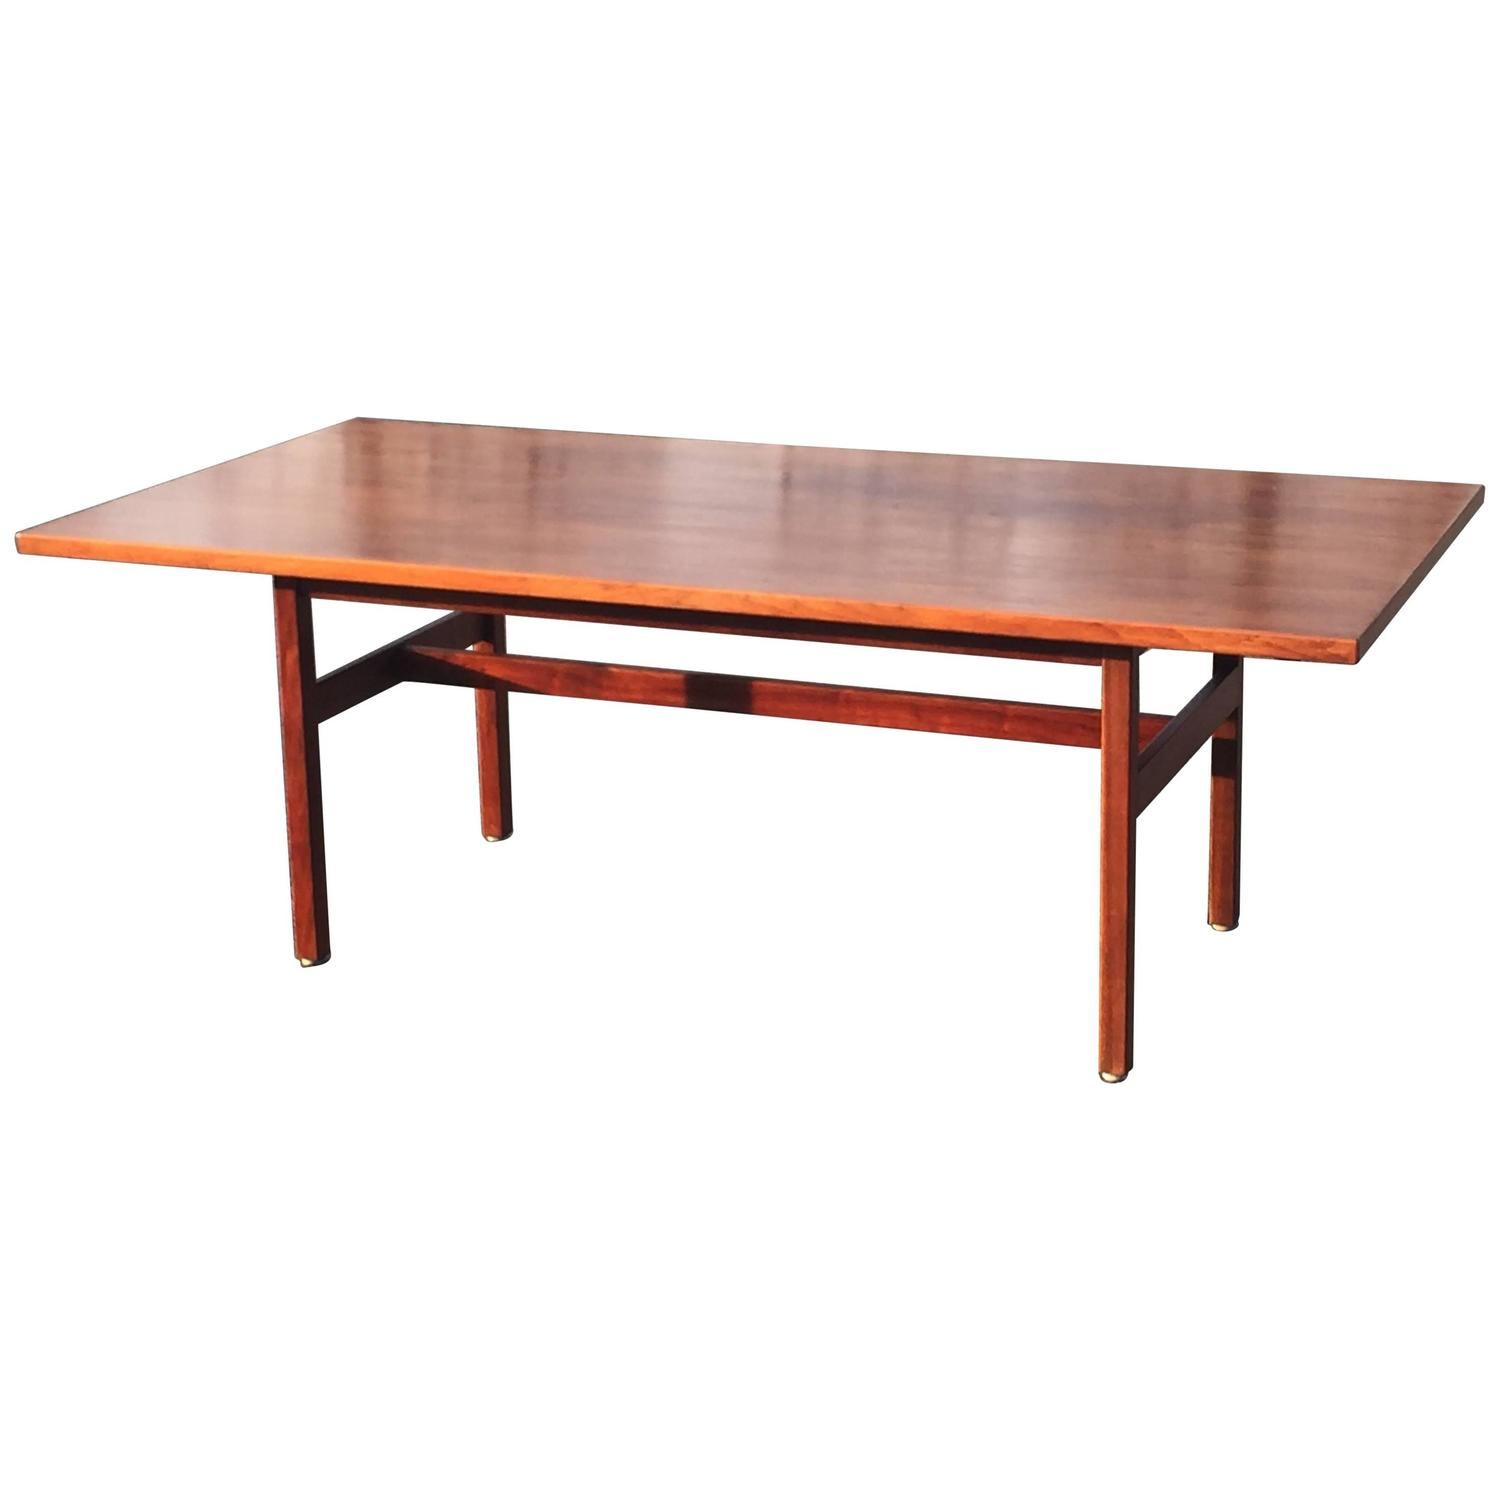 Jens risom floating bench for sale at 1stdibs - Mid Century Modern Jens Risom Dining Or Conference Table